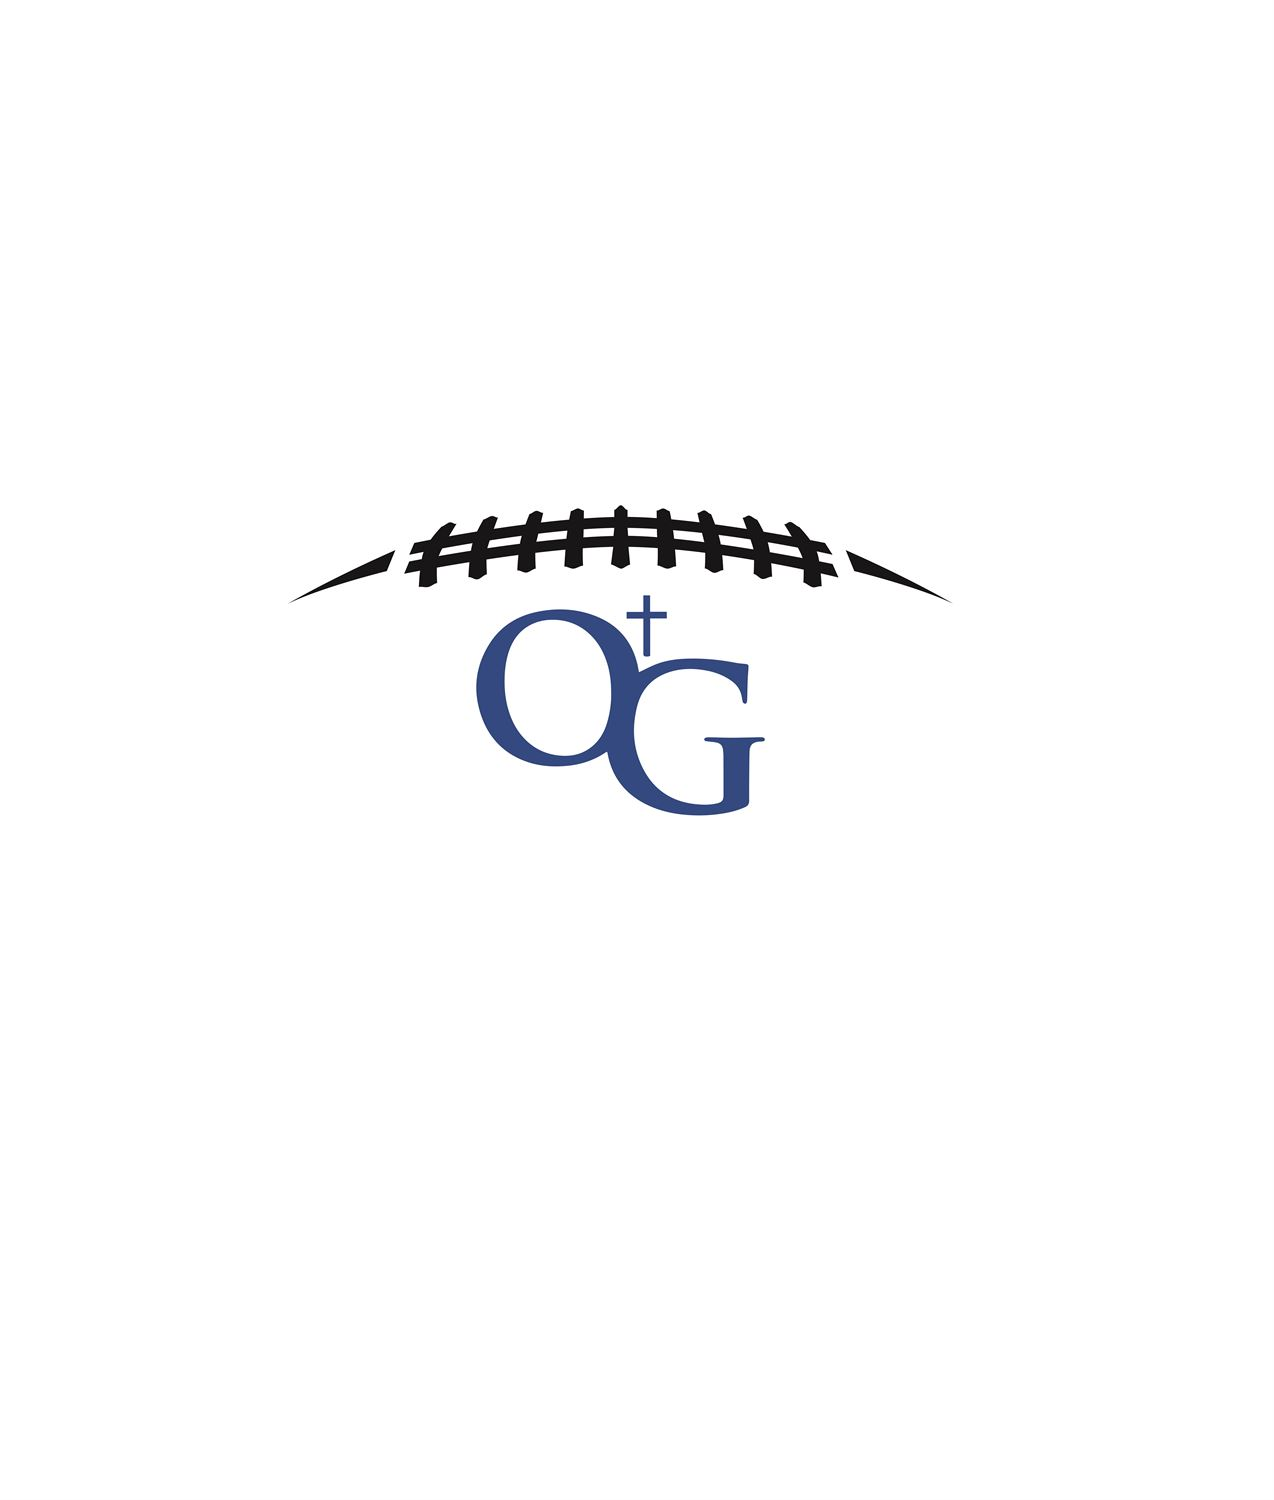 Sioux Falls O'Gorman High School - Boys Varsity Football